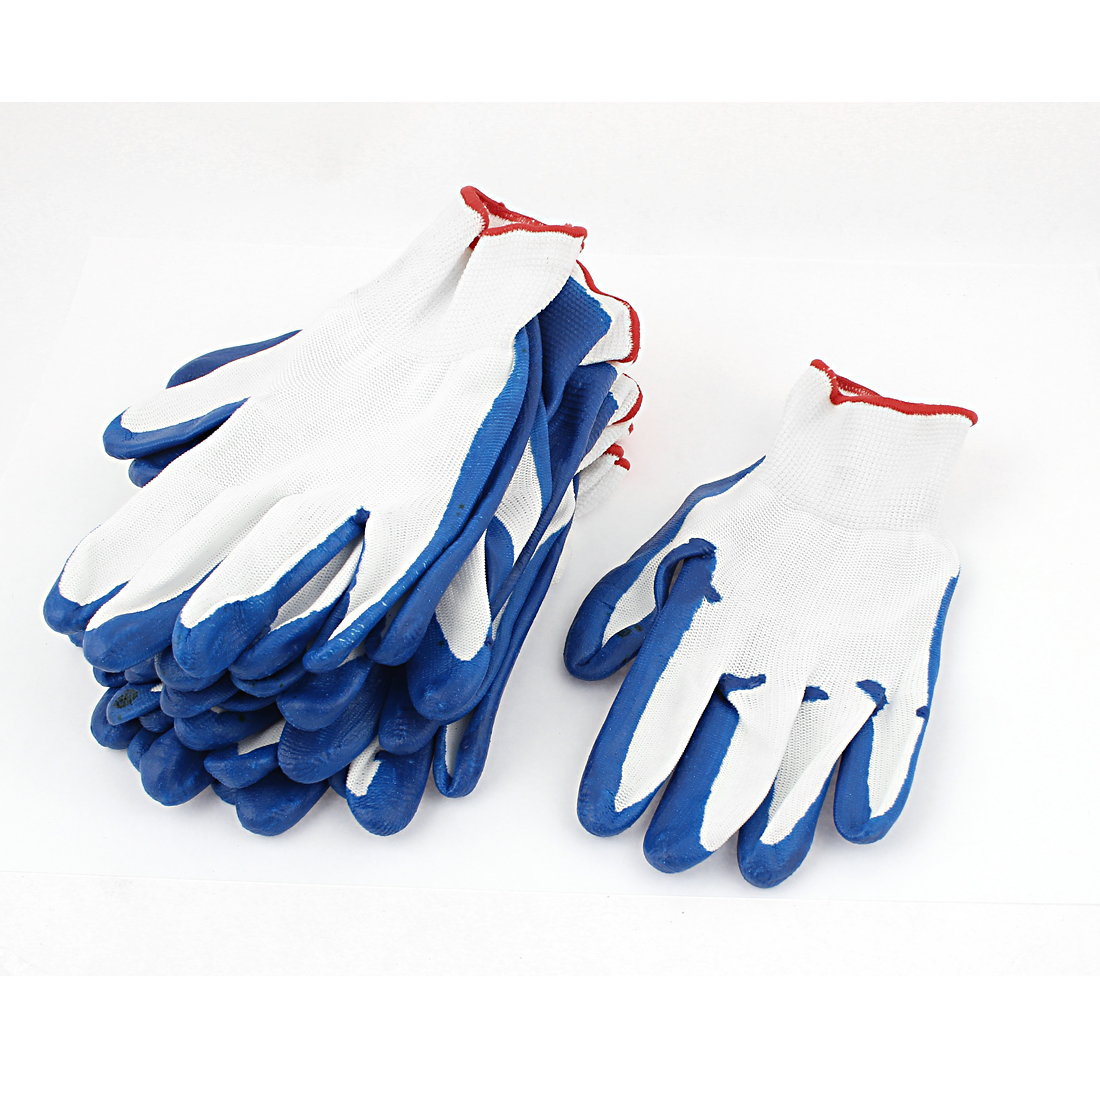 Industry White Blue PVC Nylon Full Finger Working Hand Protective Gloves 6 Pairs